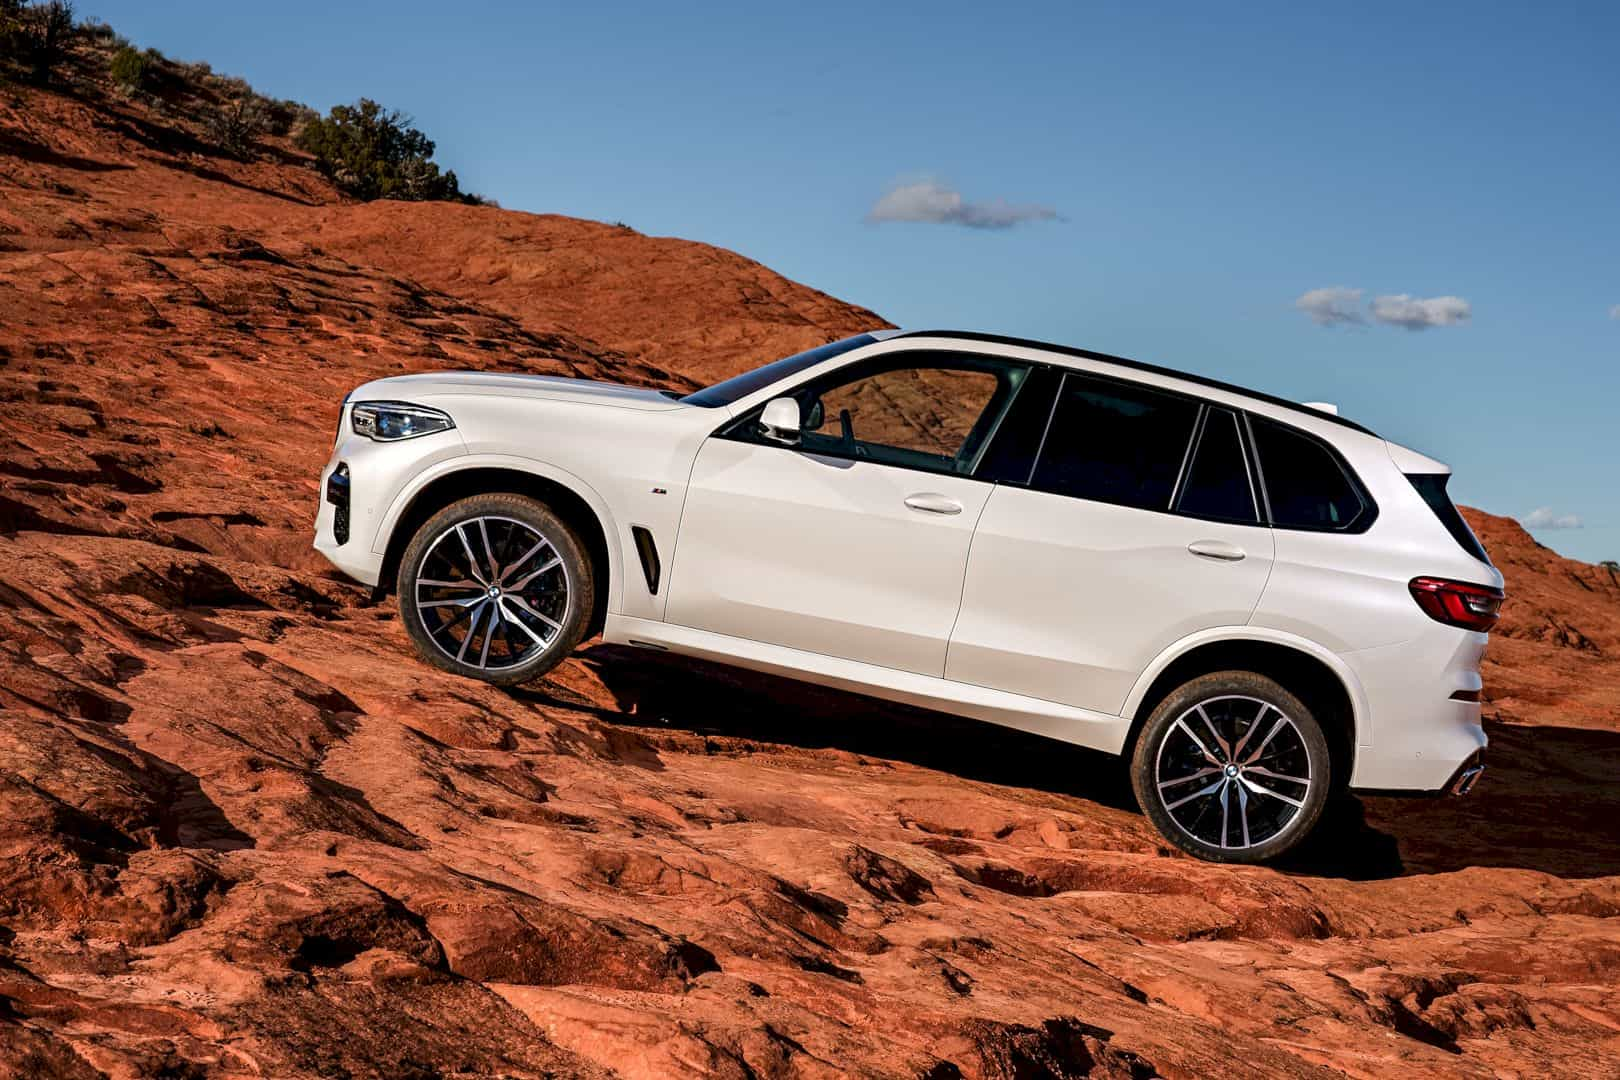 The All-New 2019 BMW X5 - The Leader of The Pack is Here!